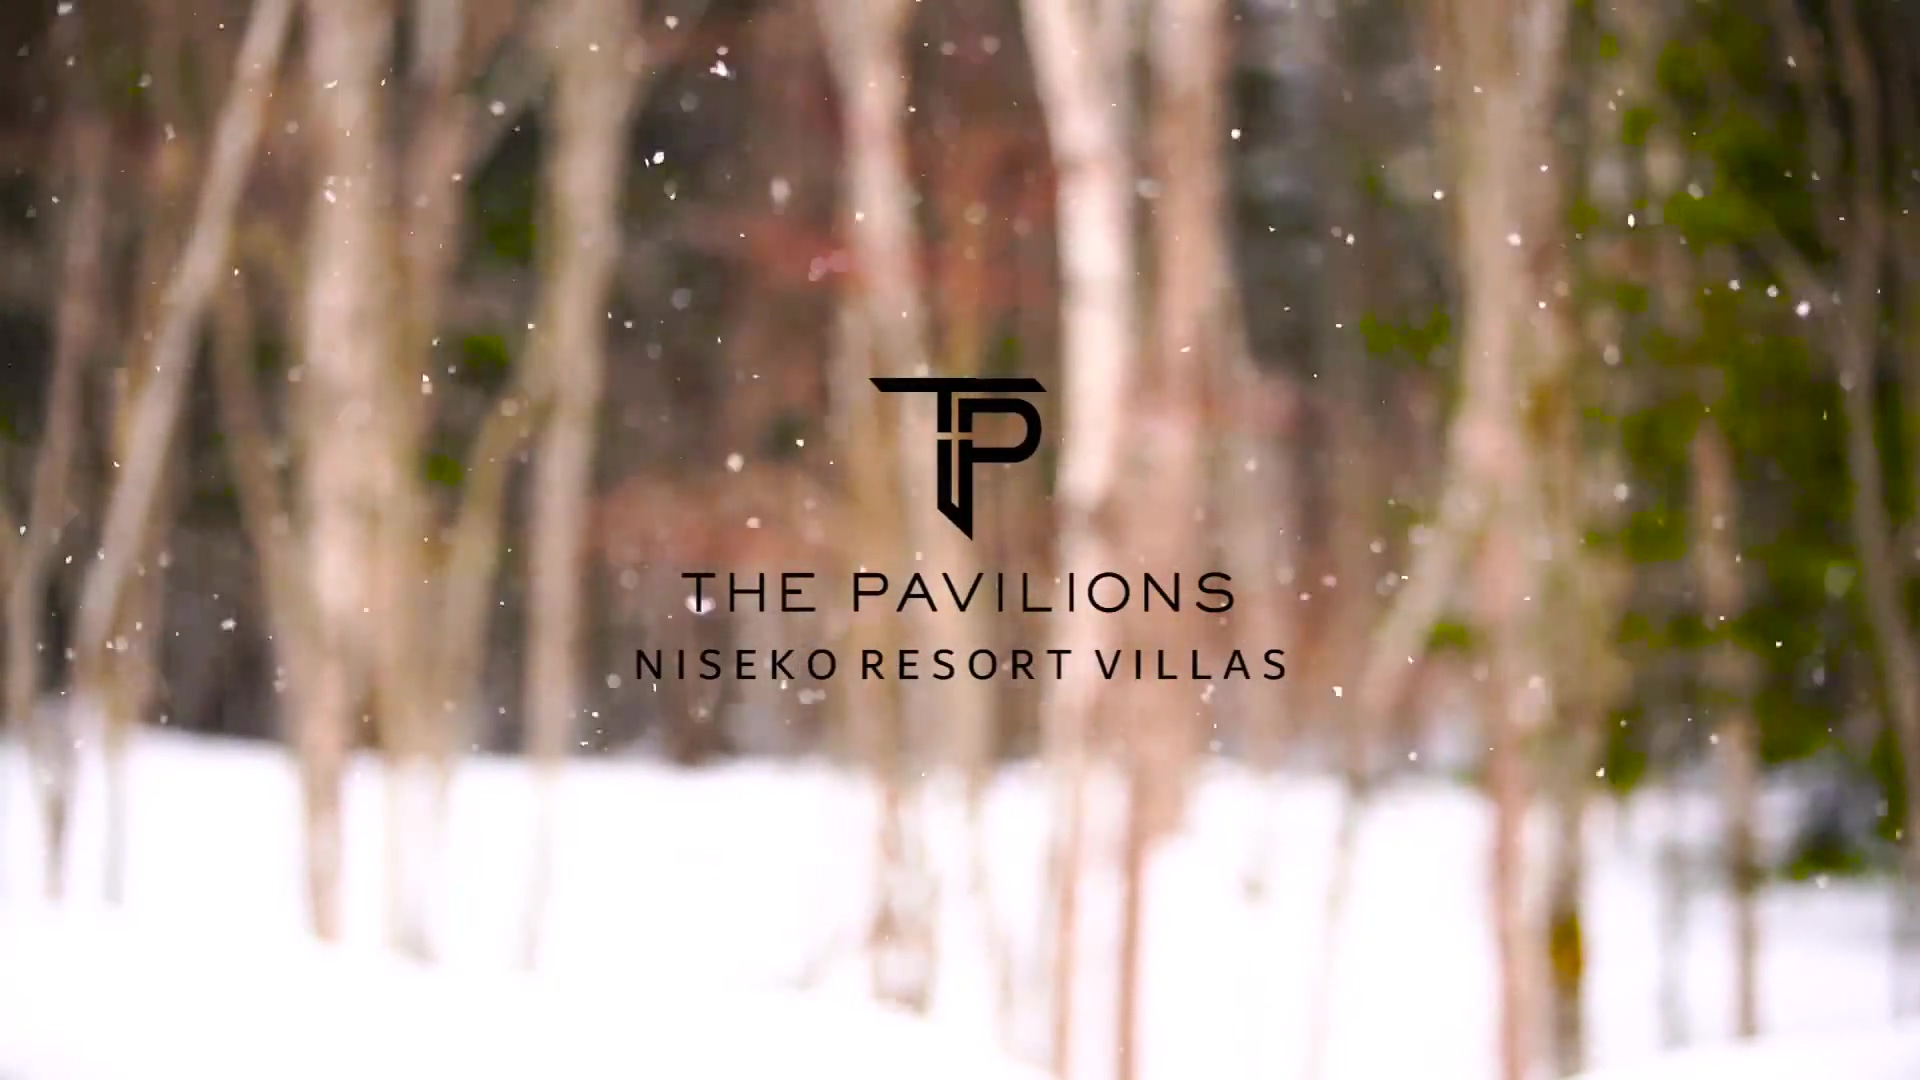 The Pavilions Resort villa20191004 last new1